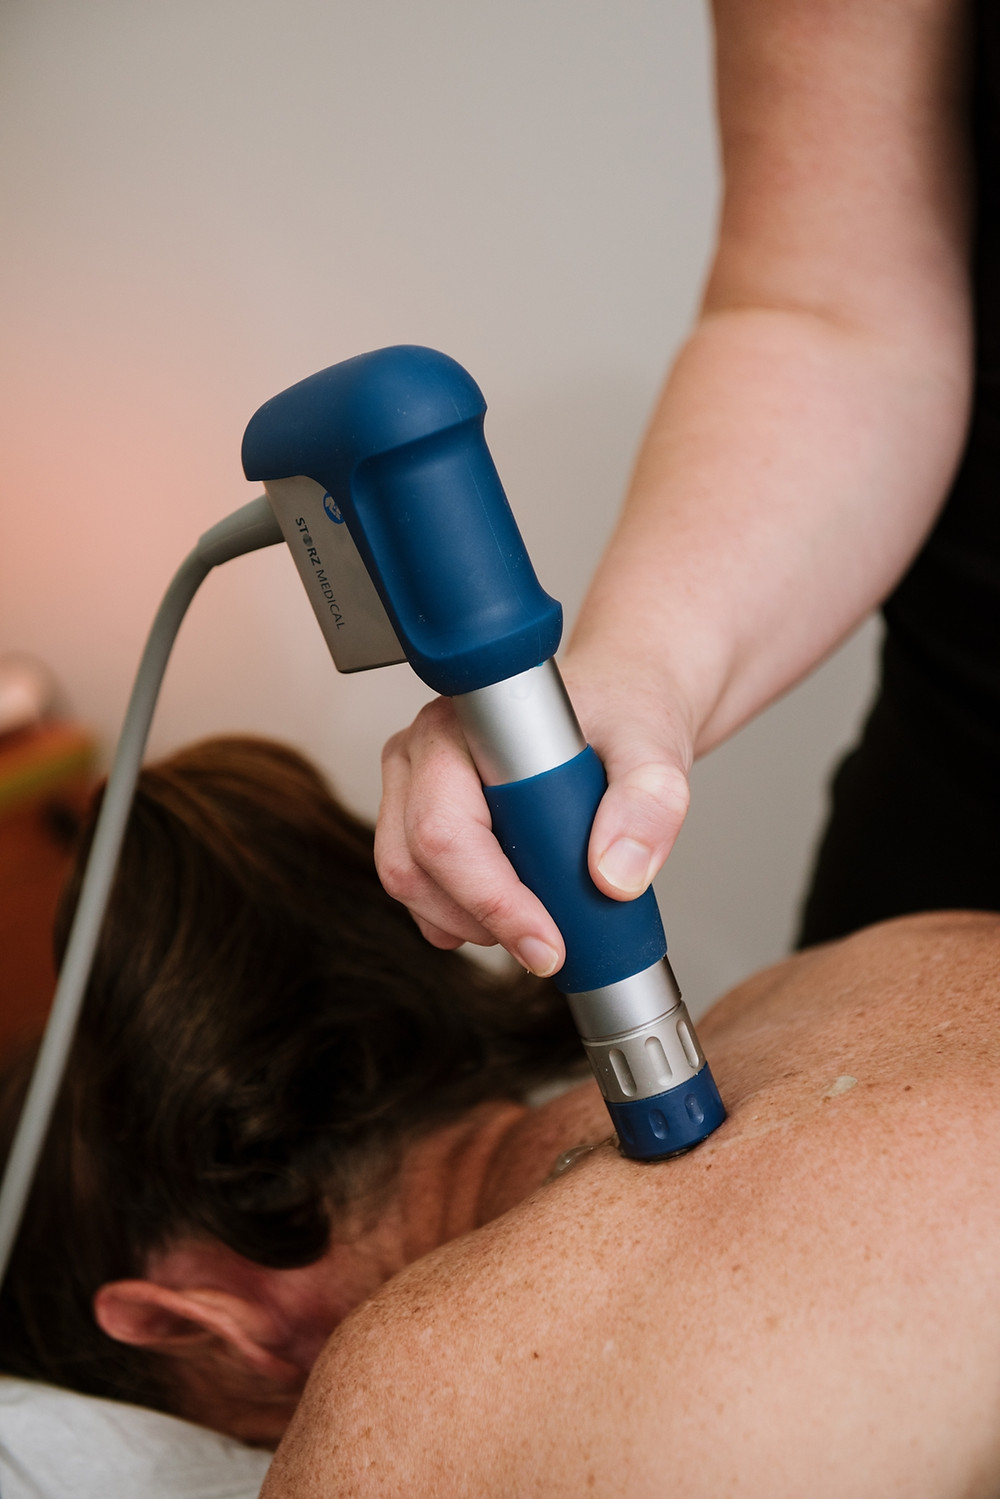 Shockwave therapy for shoulders.